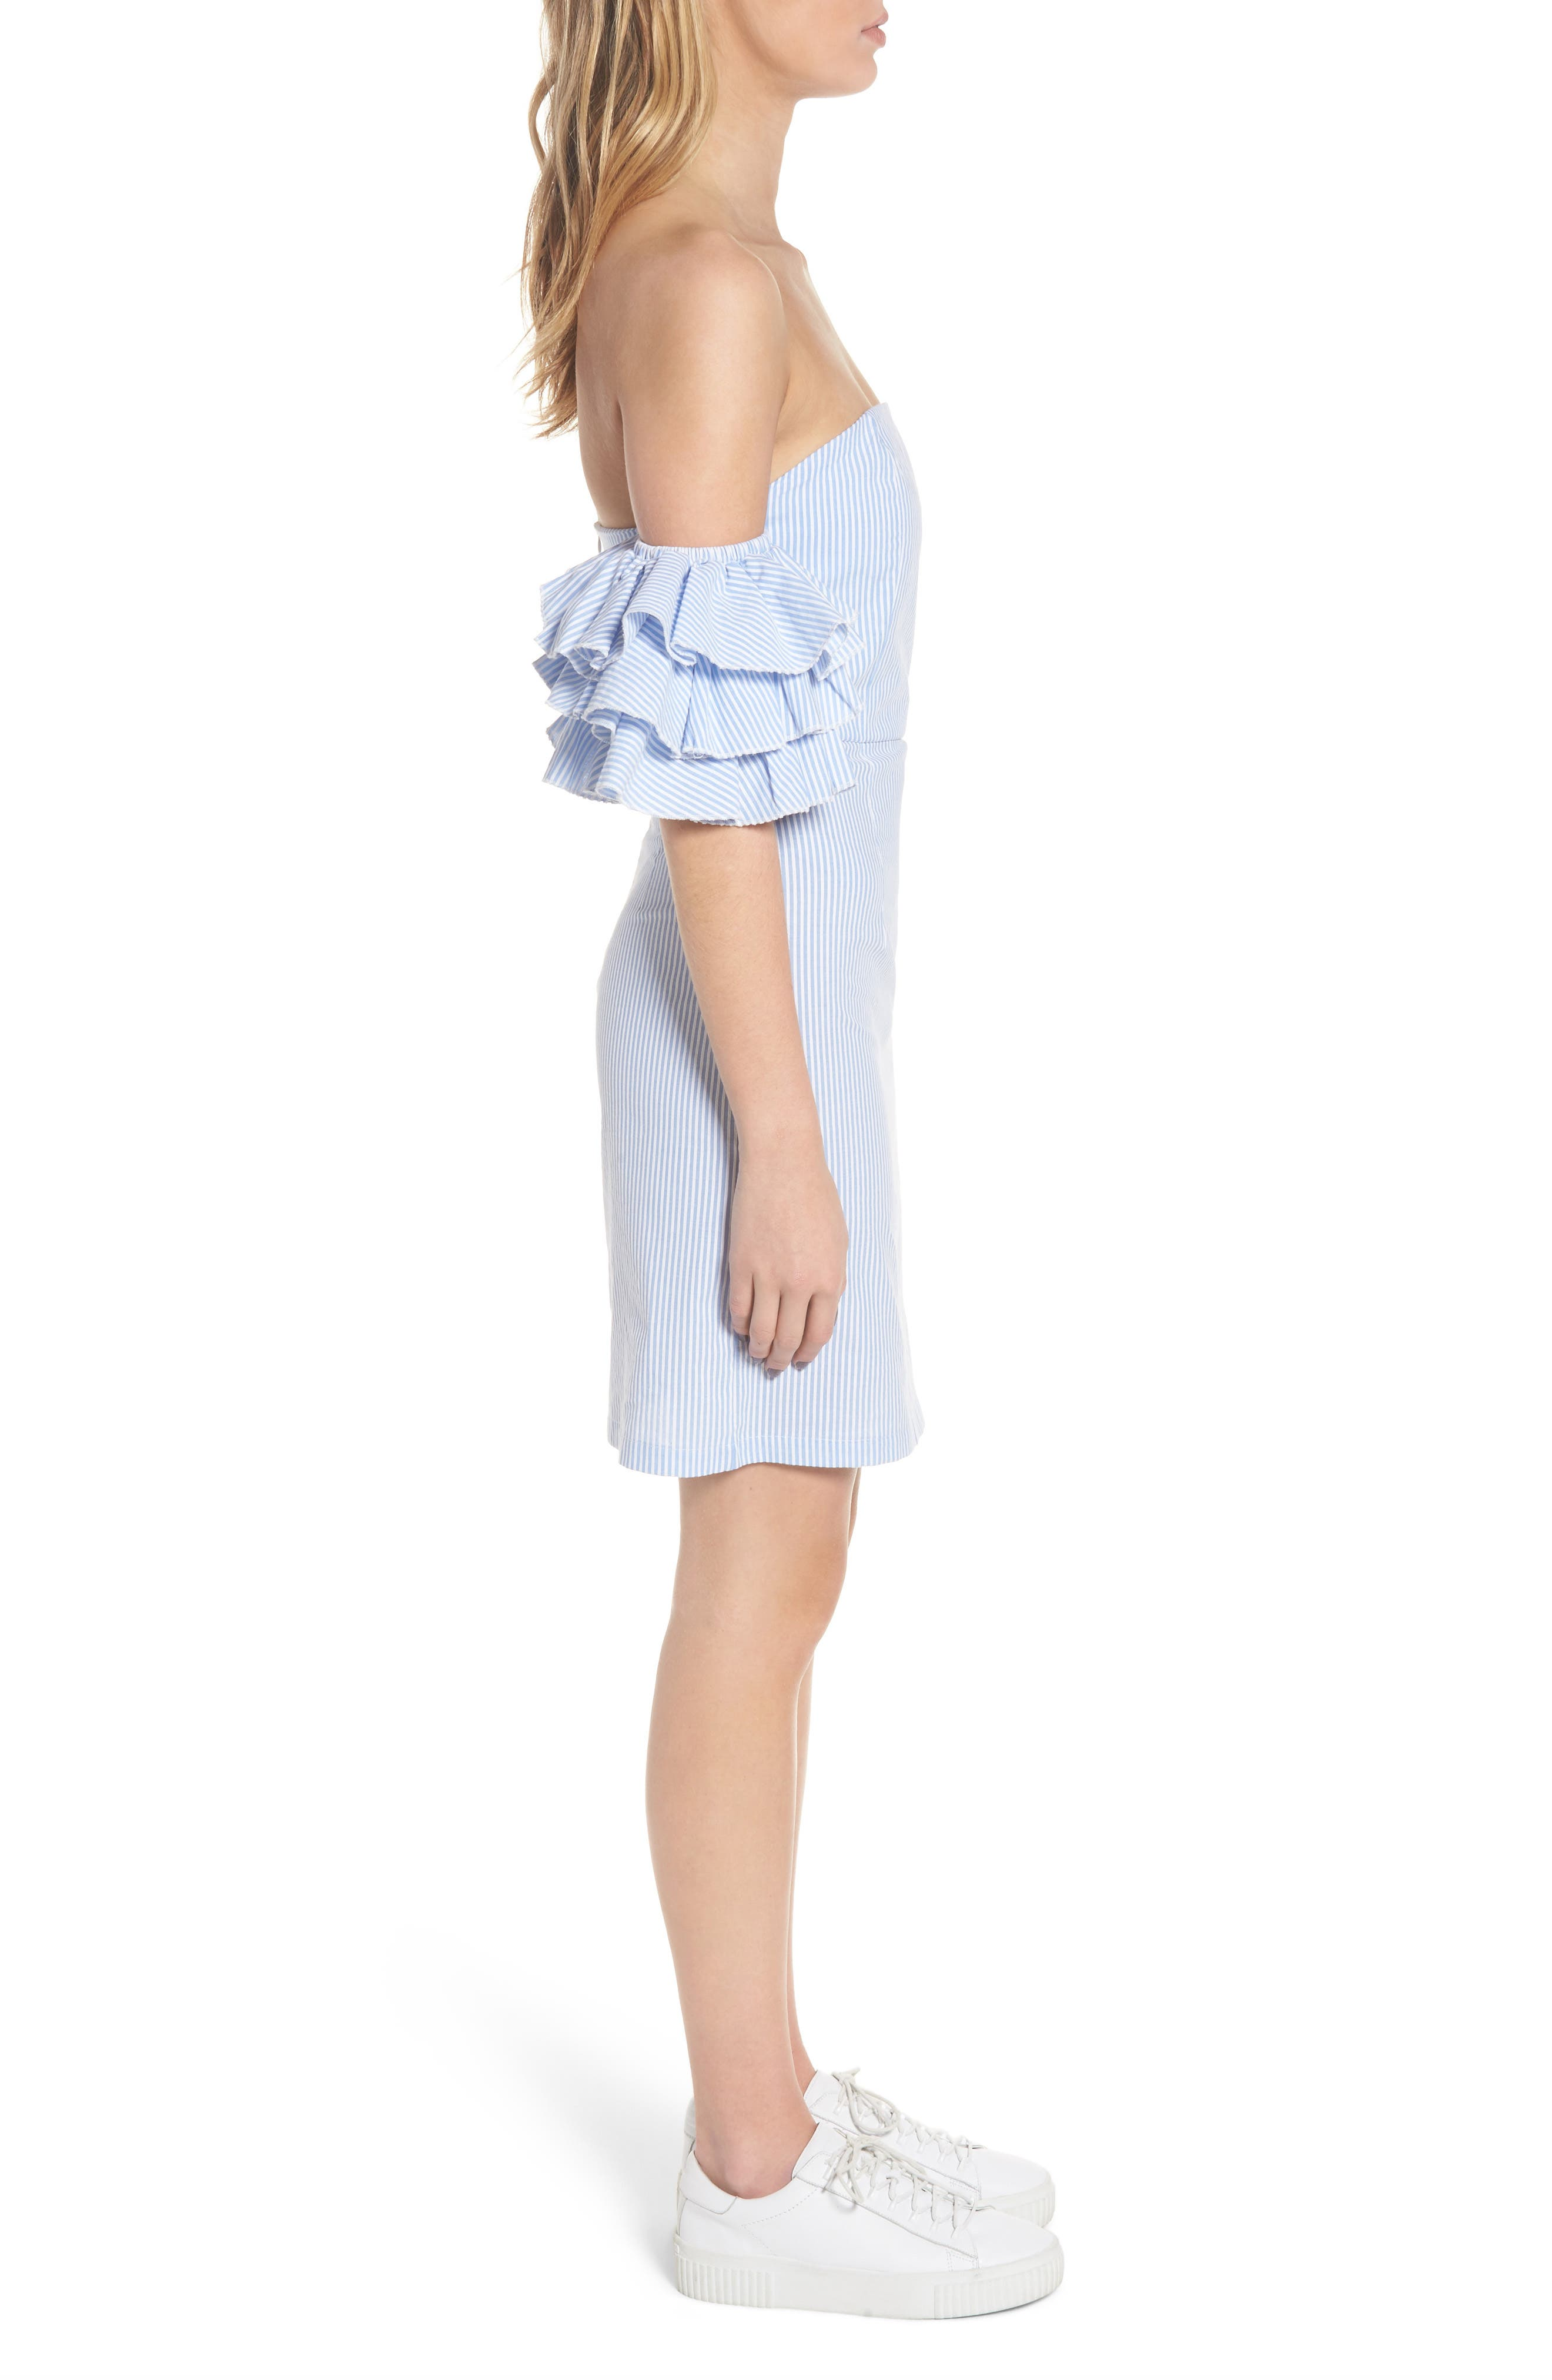 The Malibu Off the Shoulder Dress,                             Alternate thumbnail 5, color,                             Pinstriped Blue